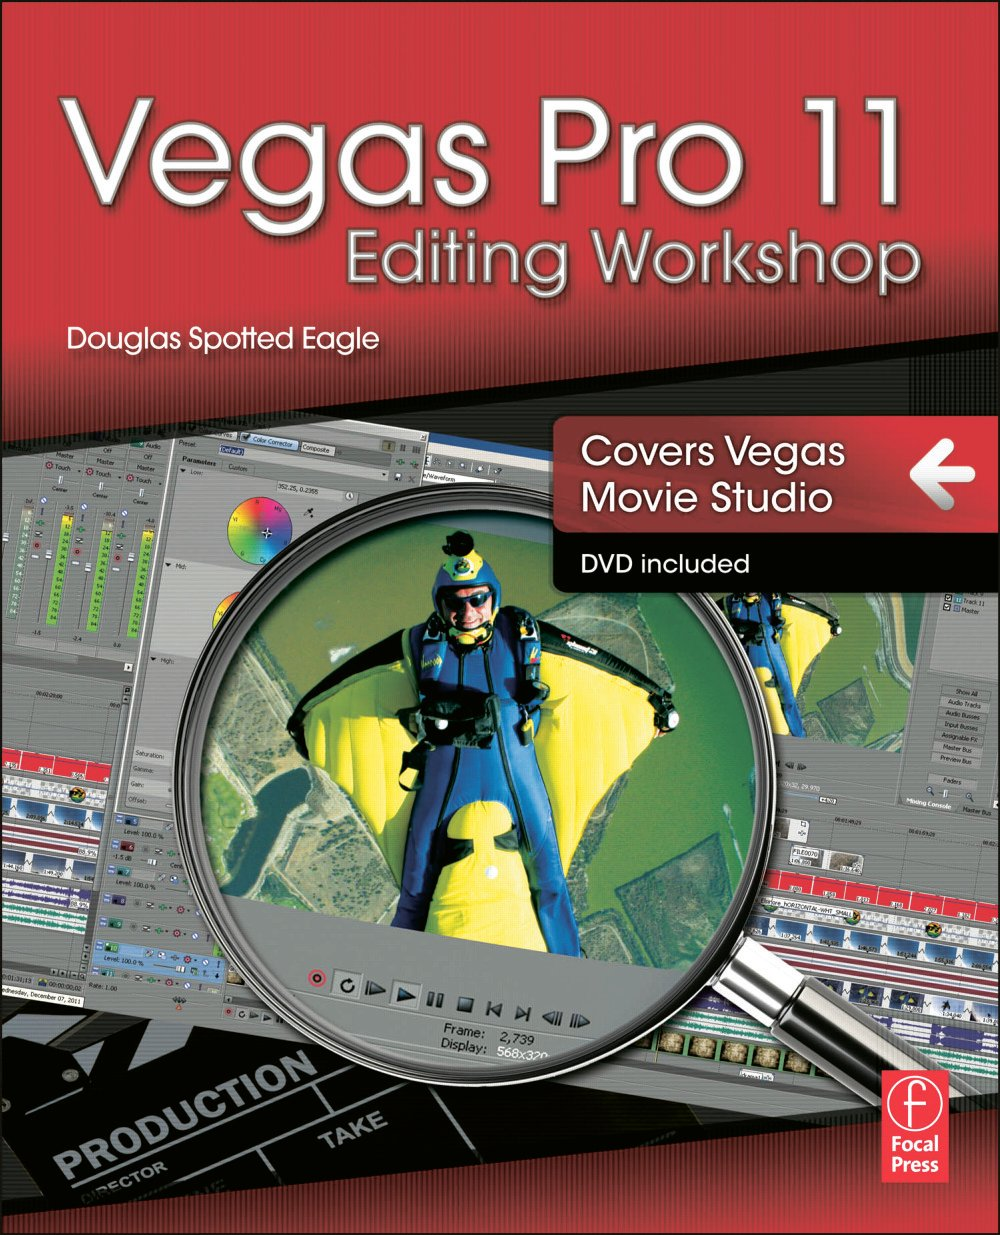 Vegas Pro 11 Editing Workshop book cover